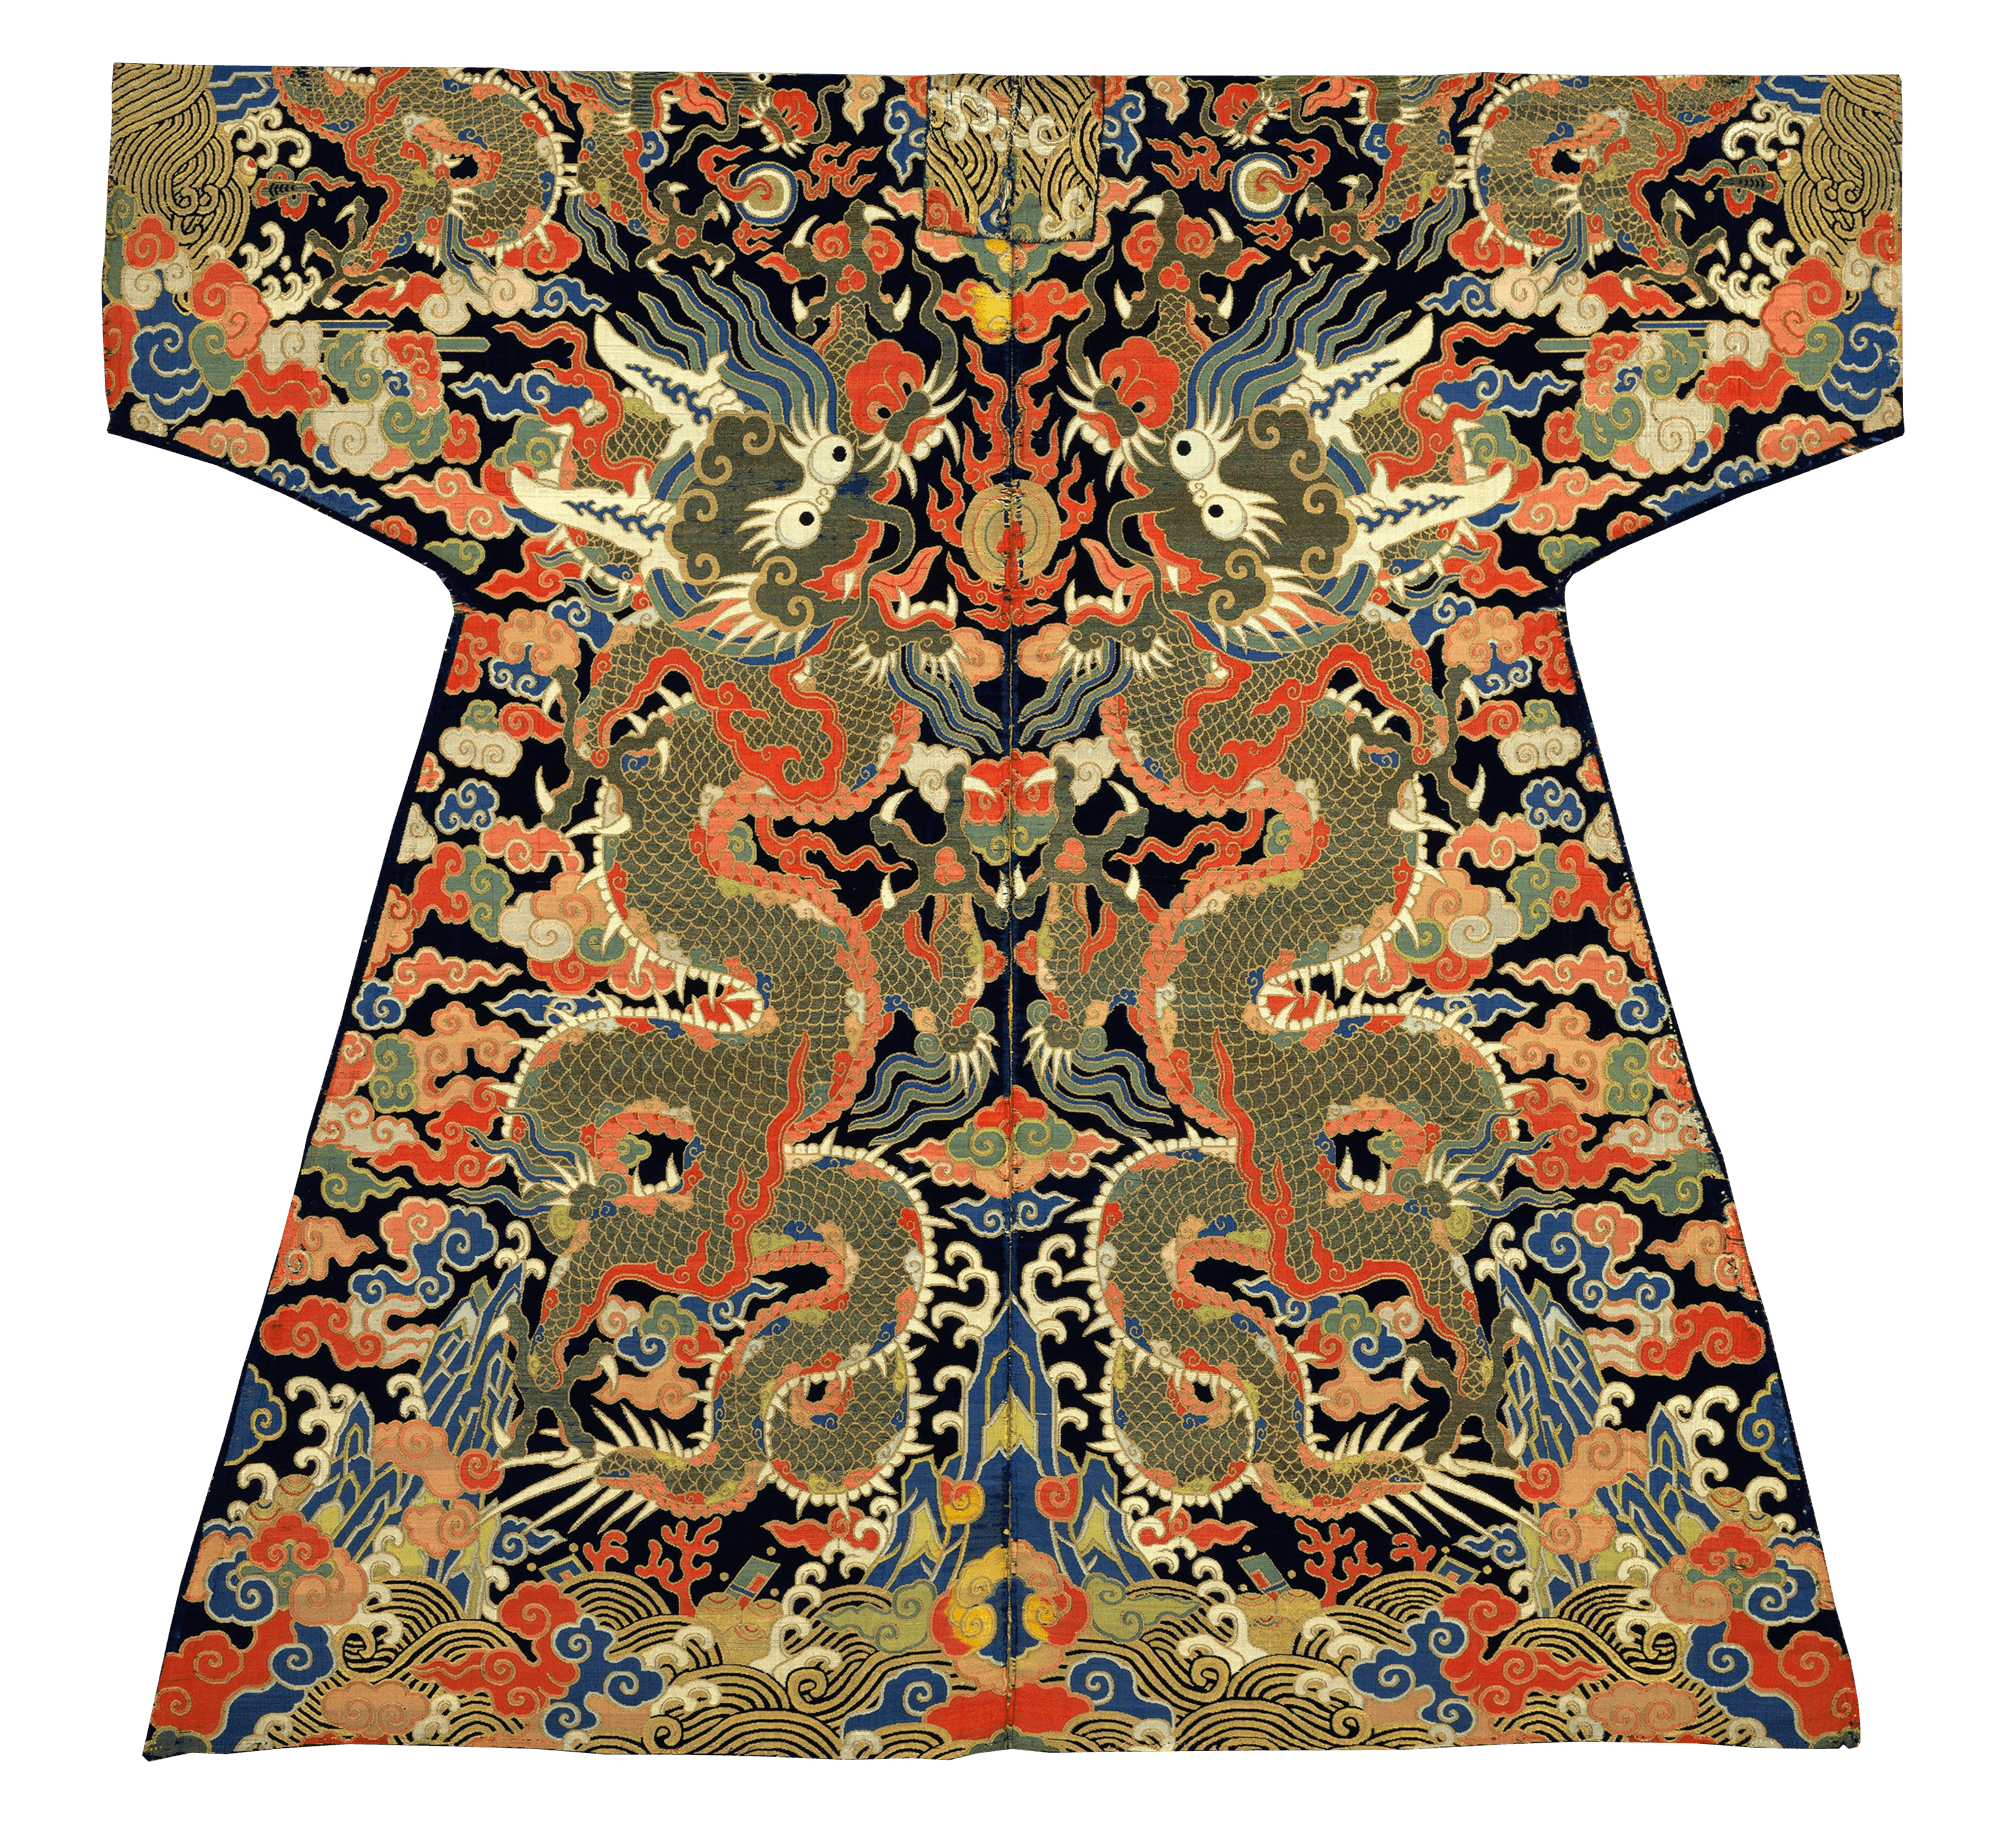 8959524f5 Velvet Textile for a Dragon Robe, 1700 — Qing Dynasty,   Things to ...